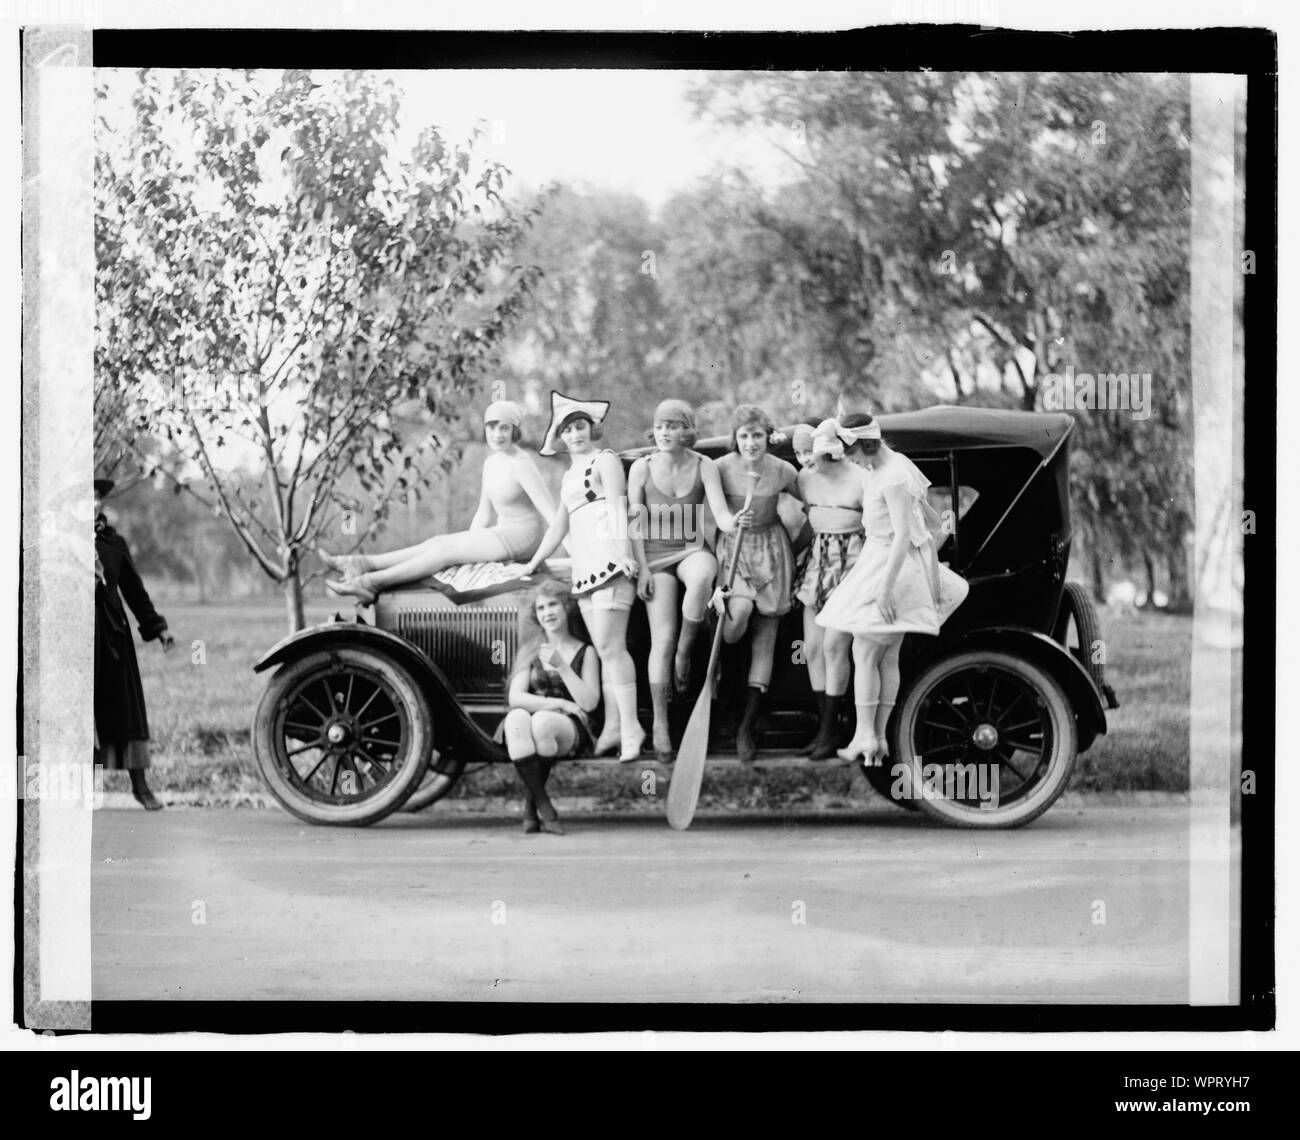 Mack Sennett High Resolution Stock Photography and Images - Alamy